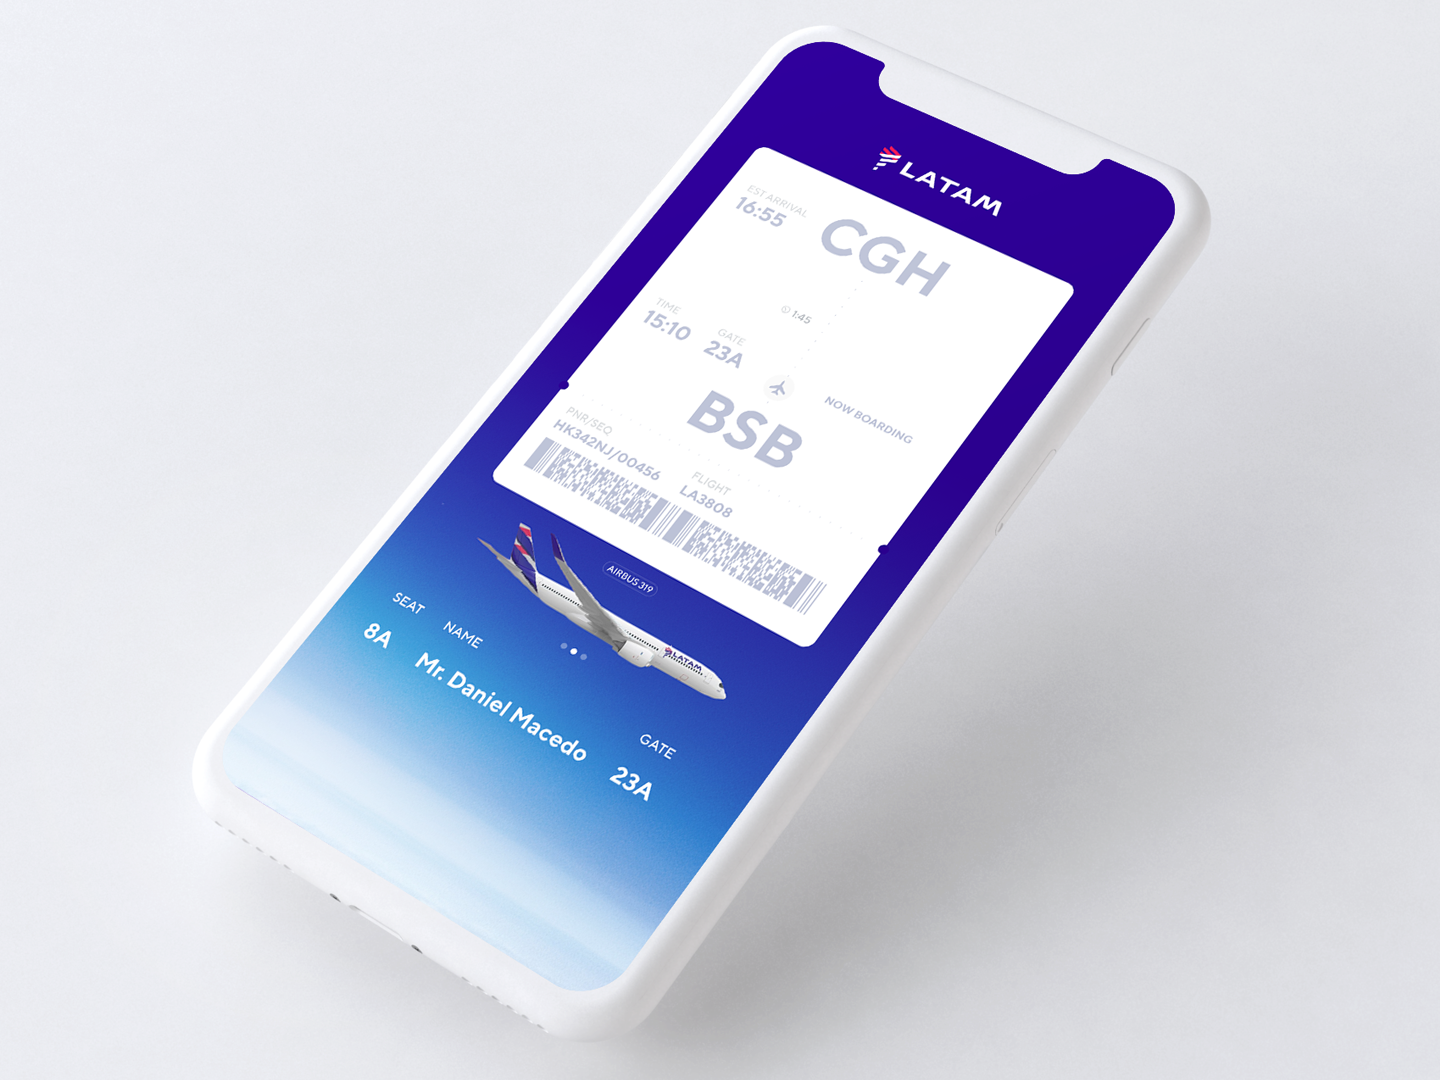 Daily_UI 24 of 100 web uxdesign ux uidesign ui trend latam onepage ticket airplane onboarding mobsite boardingpass mobile clean app day024 dailyui